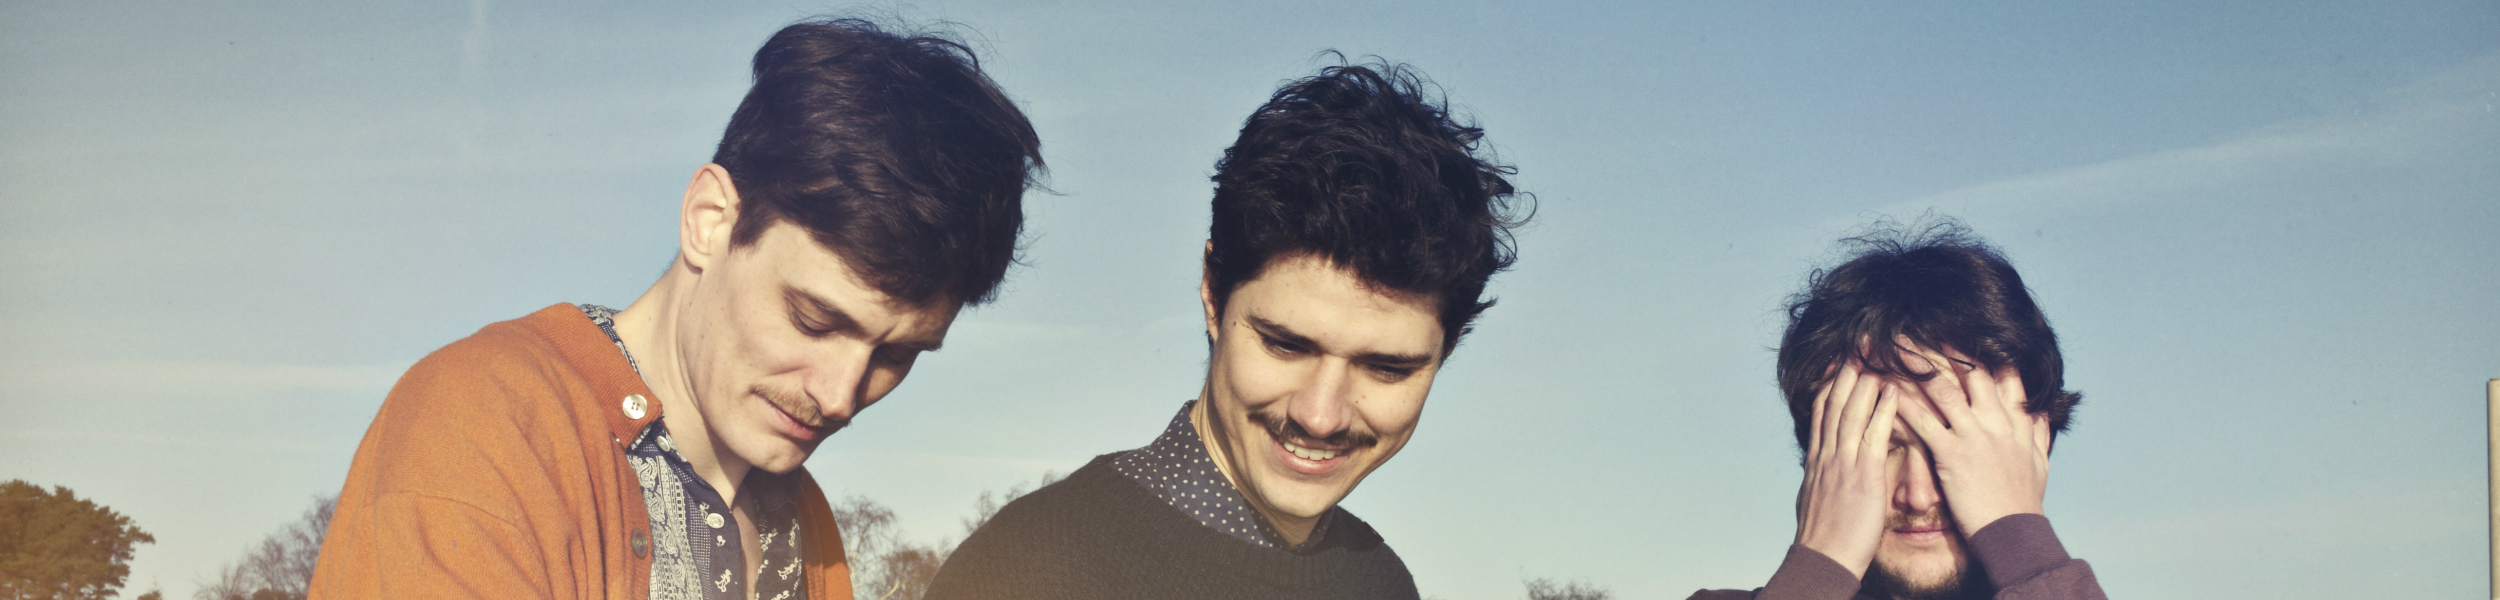 Efterklang - Efterklang Reveal video to 'Modern Drift' and Scandinavian Tour